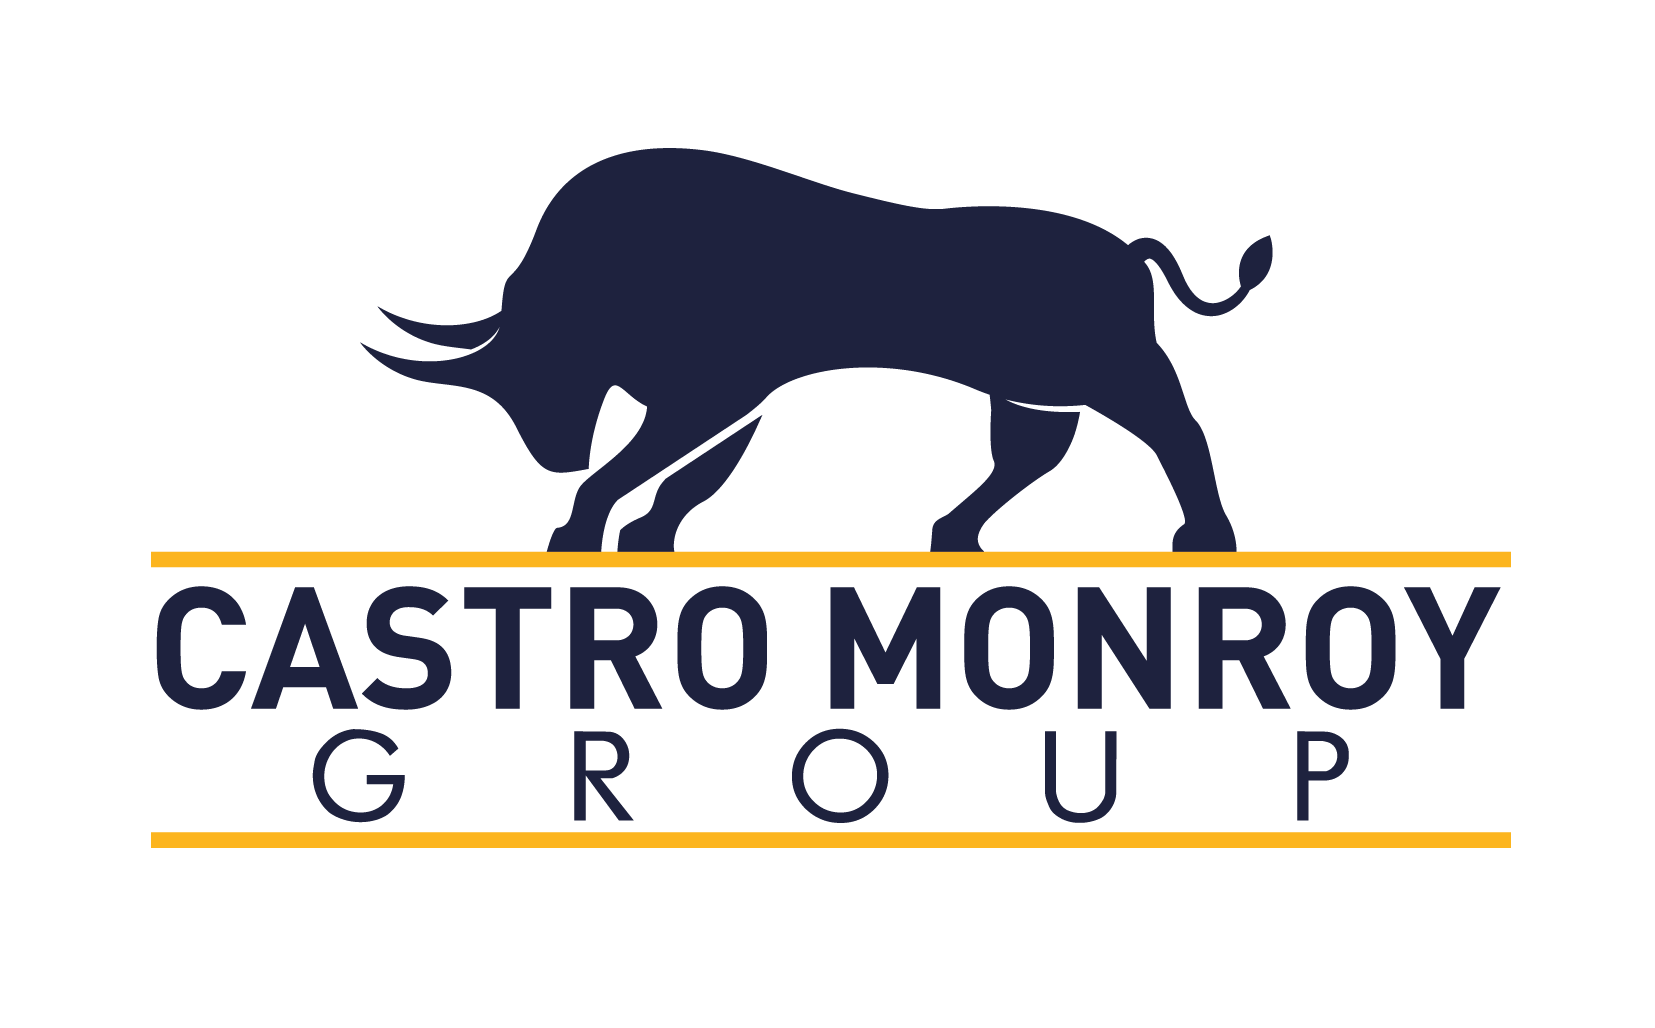 Castro-Monroy-Group-Logo-Design-01